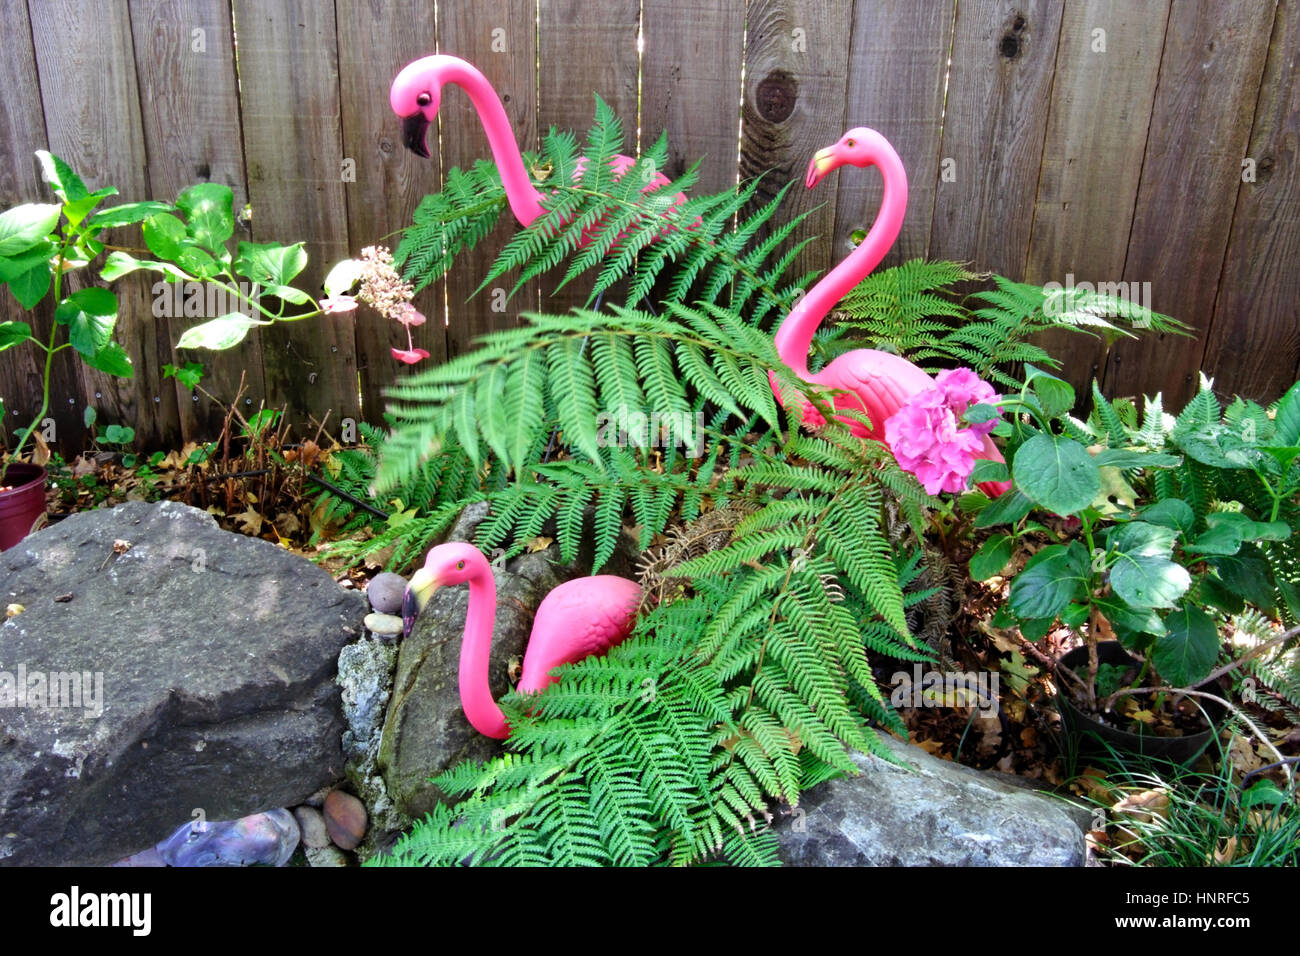 Three kitschy pink flamingos with ferns. - Stock Image